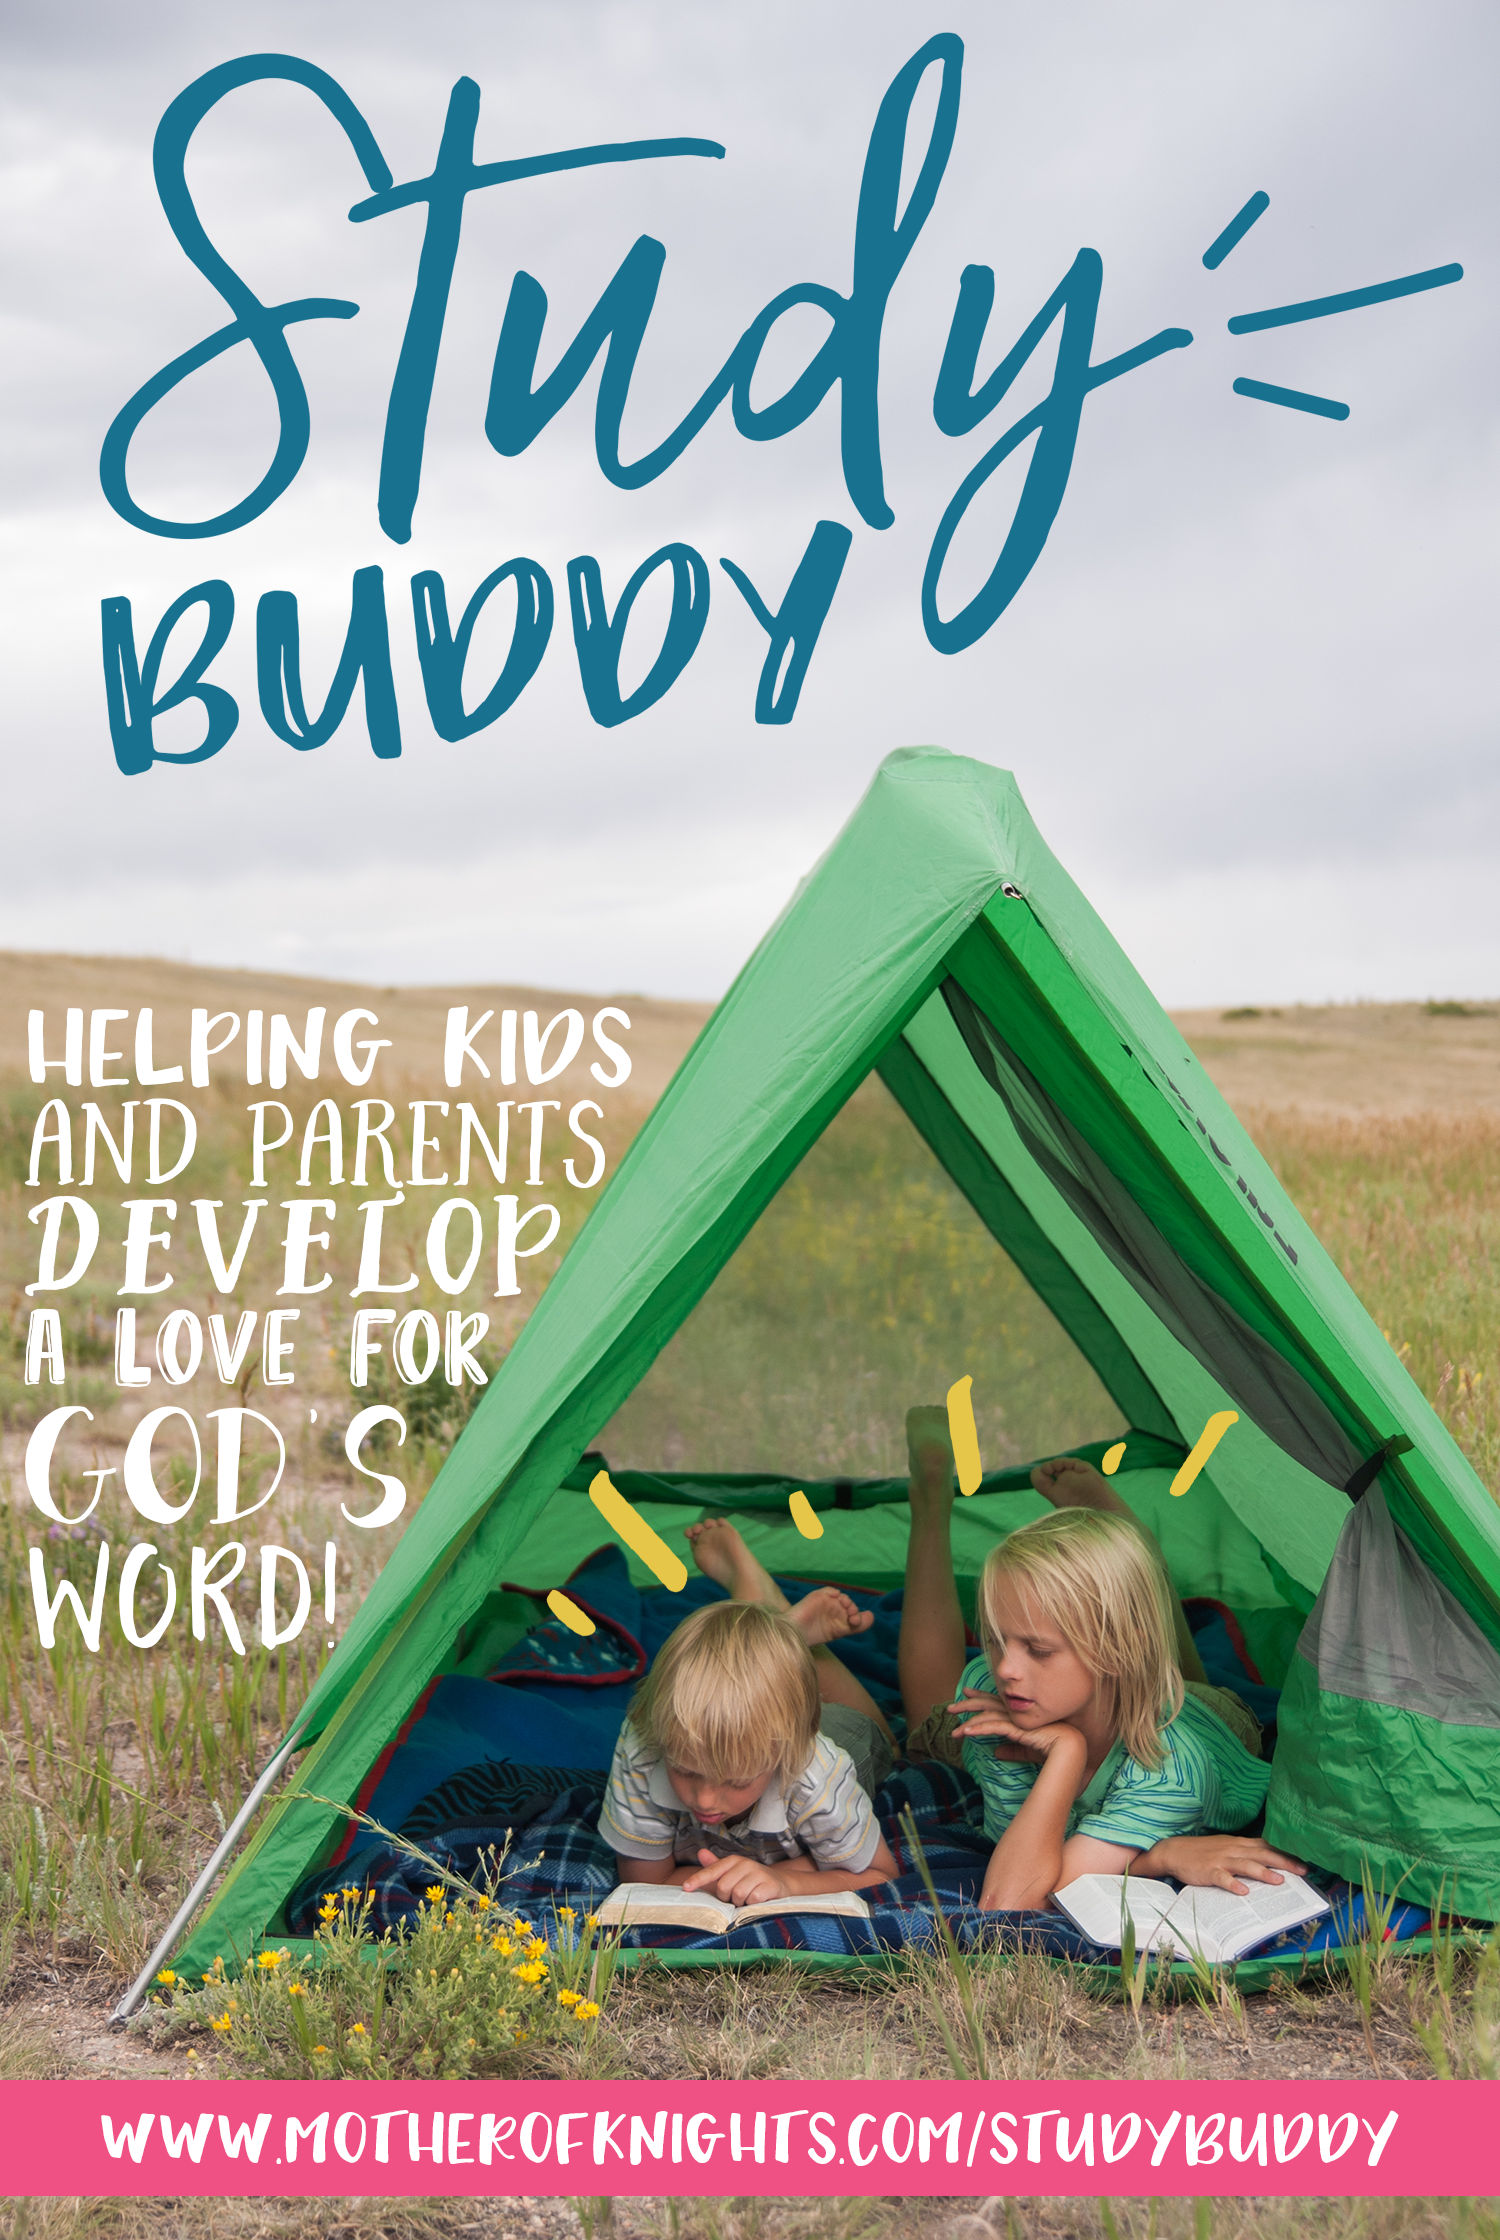 Check out the brand new series of Bible Study guides for parents and children to work through together — as Study Buddies! | www.motherofknights.com/studybuddy